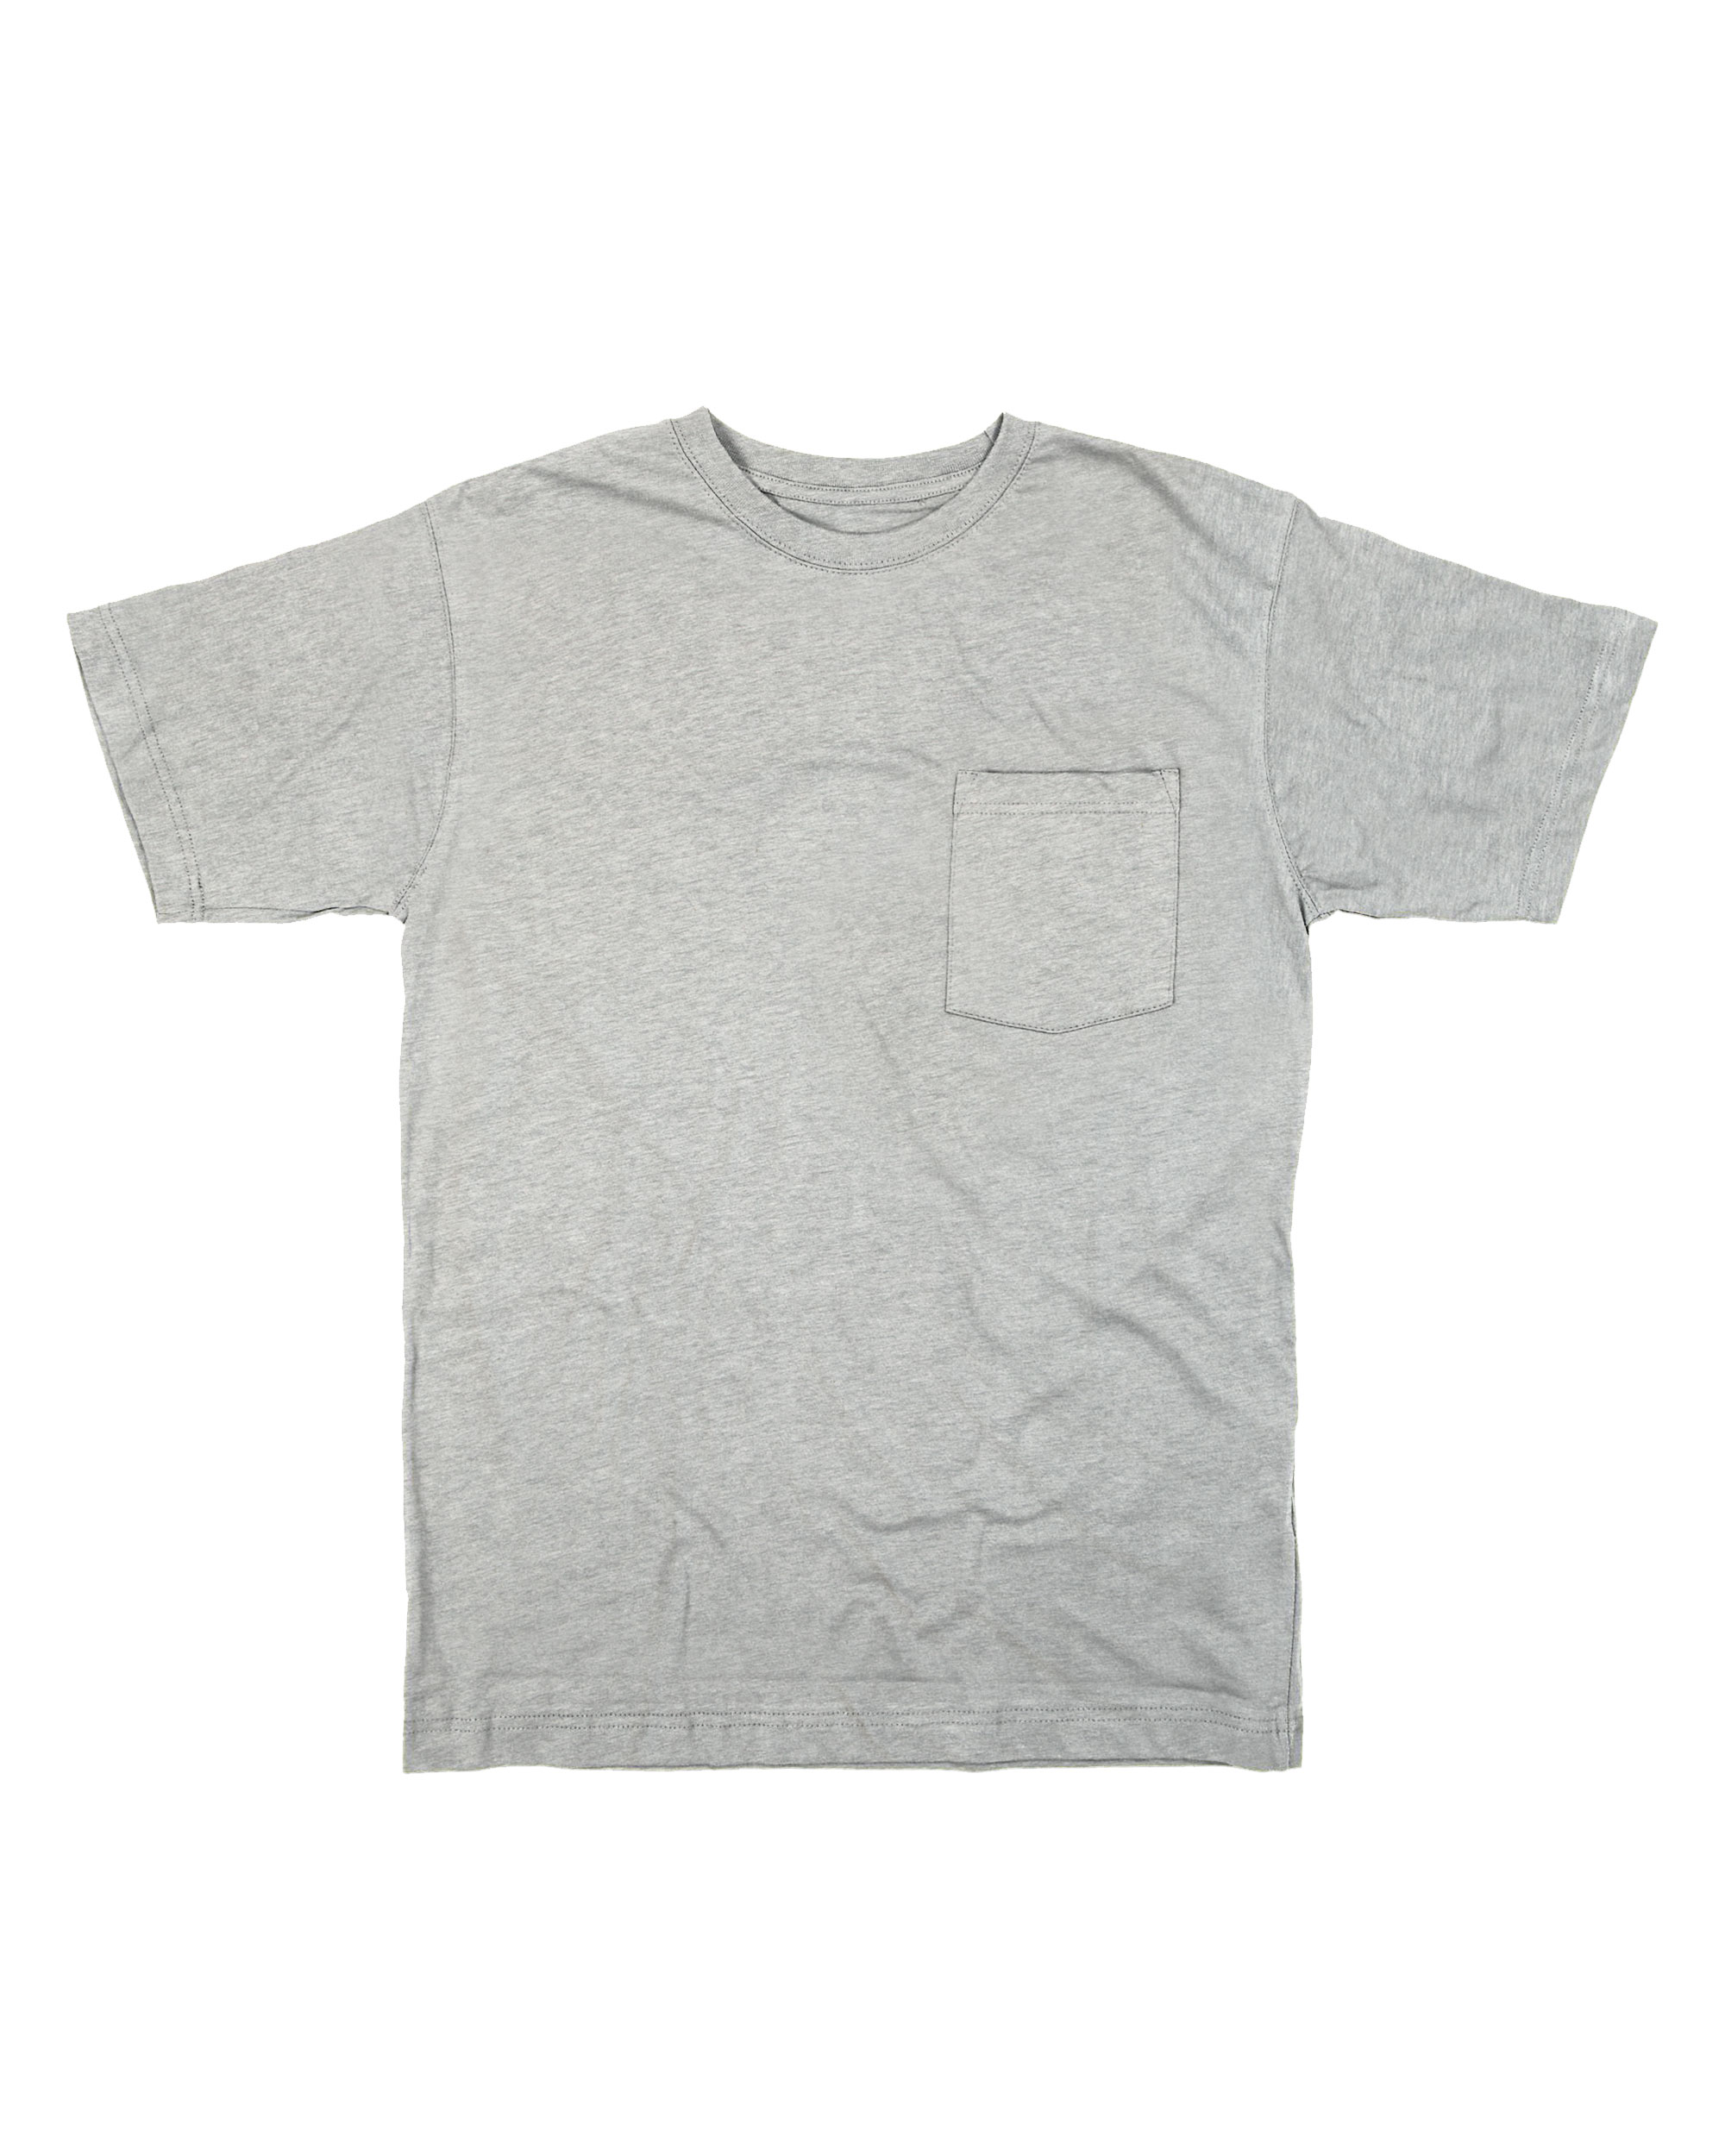 Berne Workwear BSM16 - Heavyweight Short Sleeve Pocket Tee